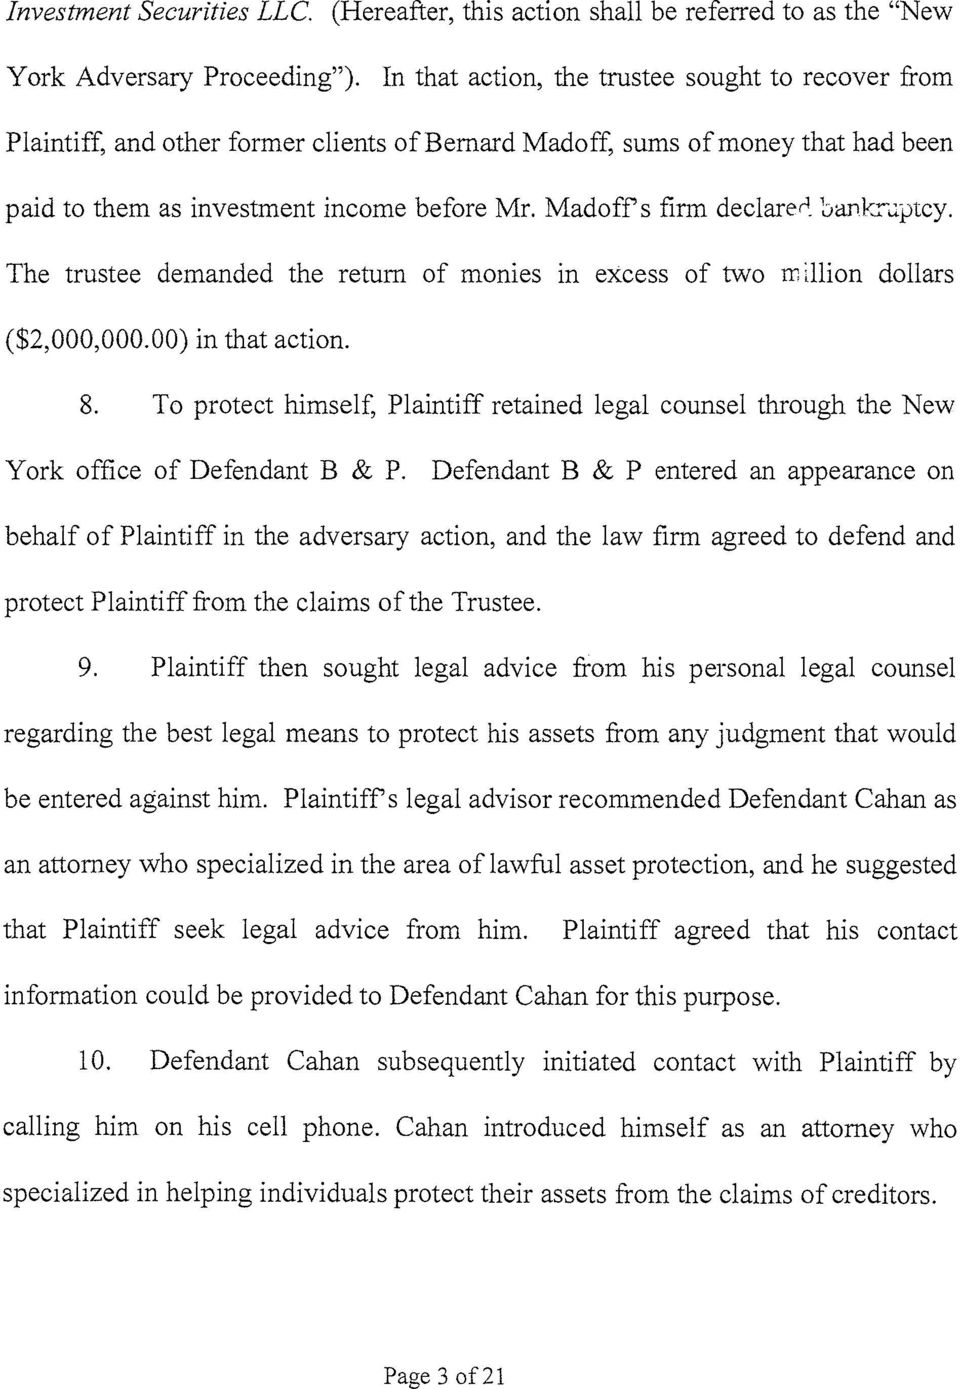 l:janlrr.:ptcy. The trustee demanded the return of monies in excess of two rr illion dollars ($2,000,000.00) in that action. 8.